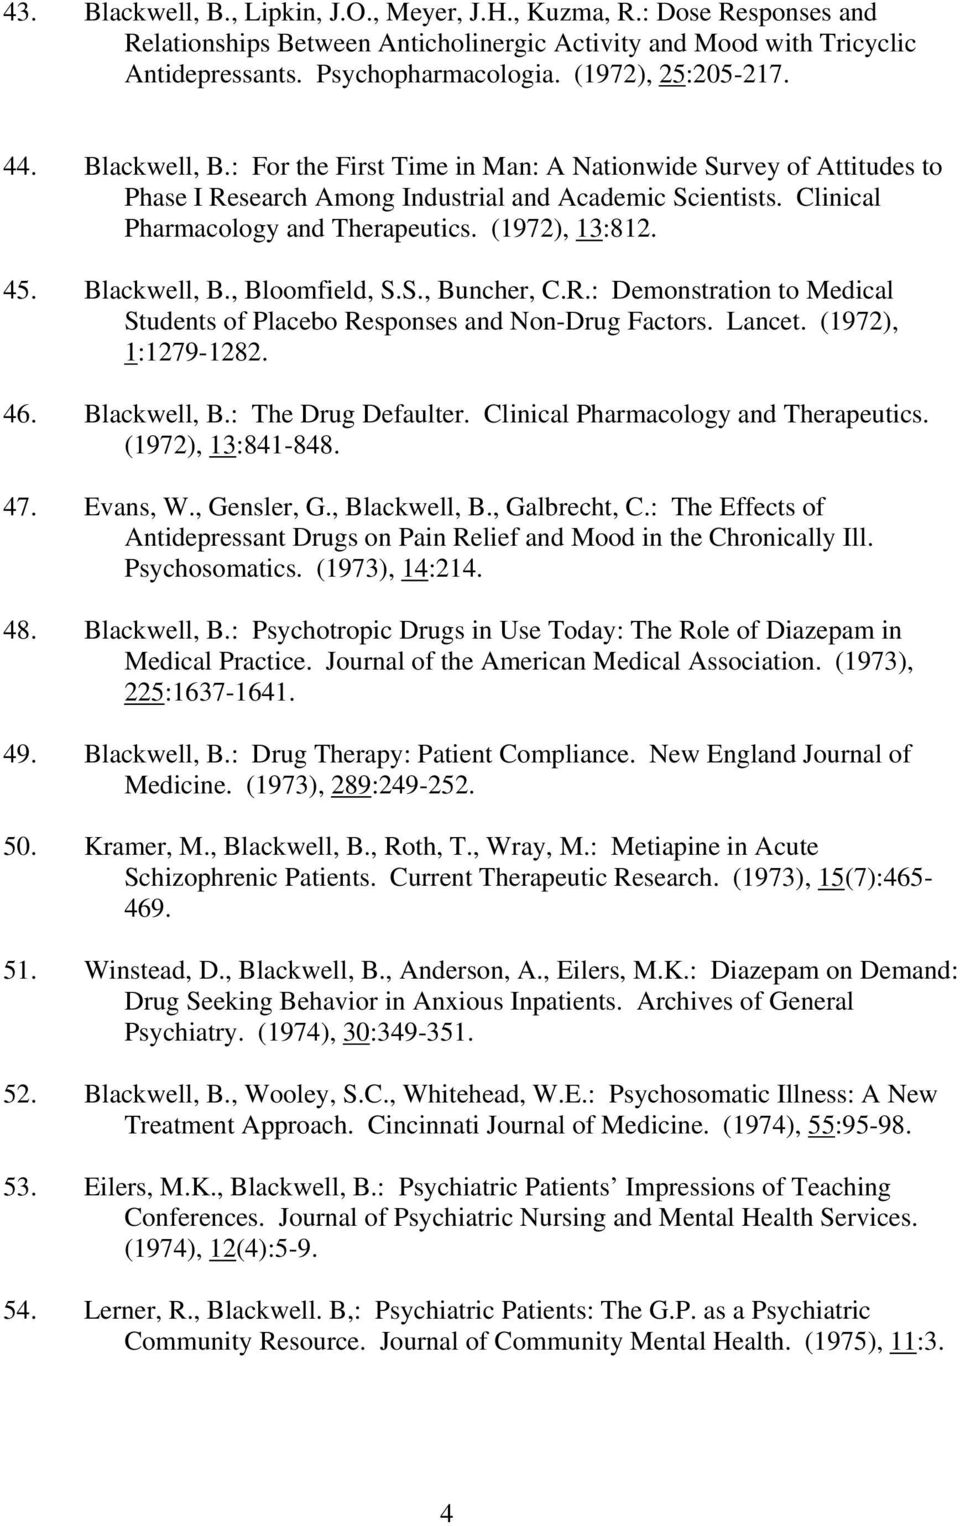 (1972), 13:812. 45. Blackwell, B., Bloomfield, S.S., Buncher, C.R.: Demonstration to Medical Students of Placebo Responses and Non-Drug Factors. Lancet. (1972), 1:1279-1282. 46. Blackwell, B.: The Drug Defaulter.